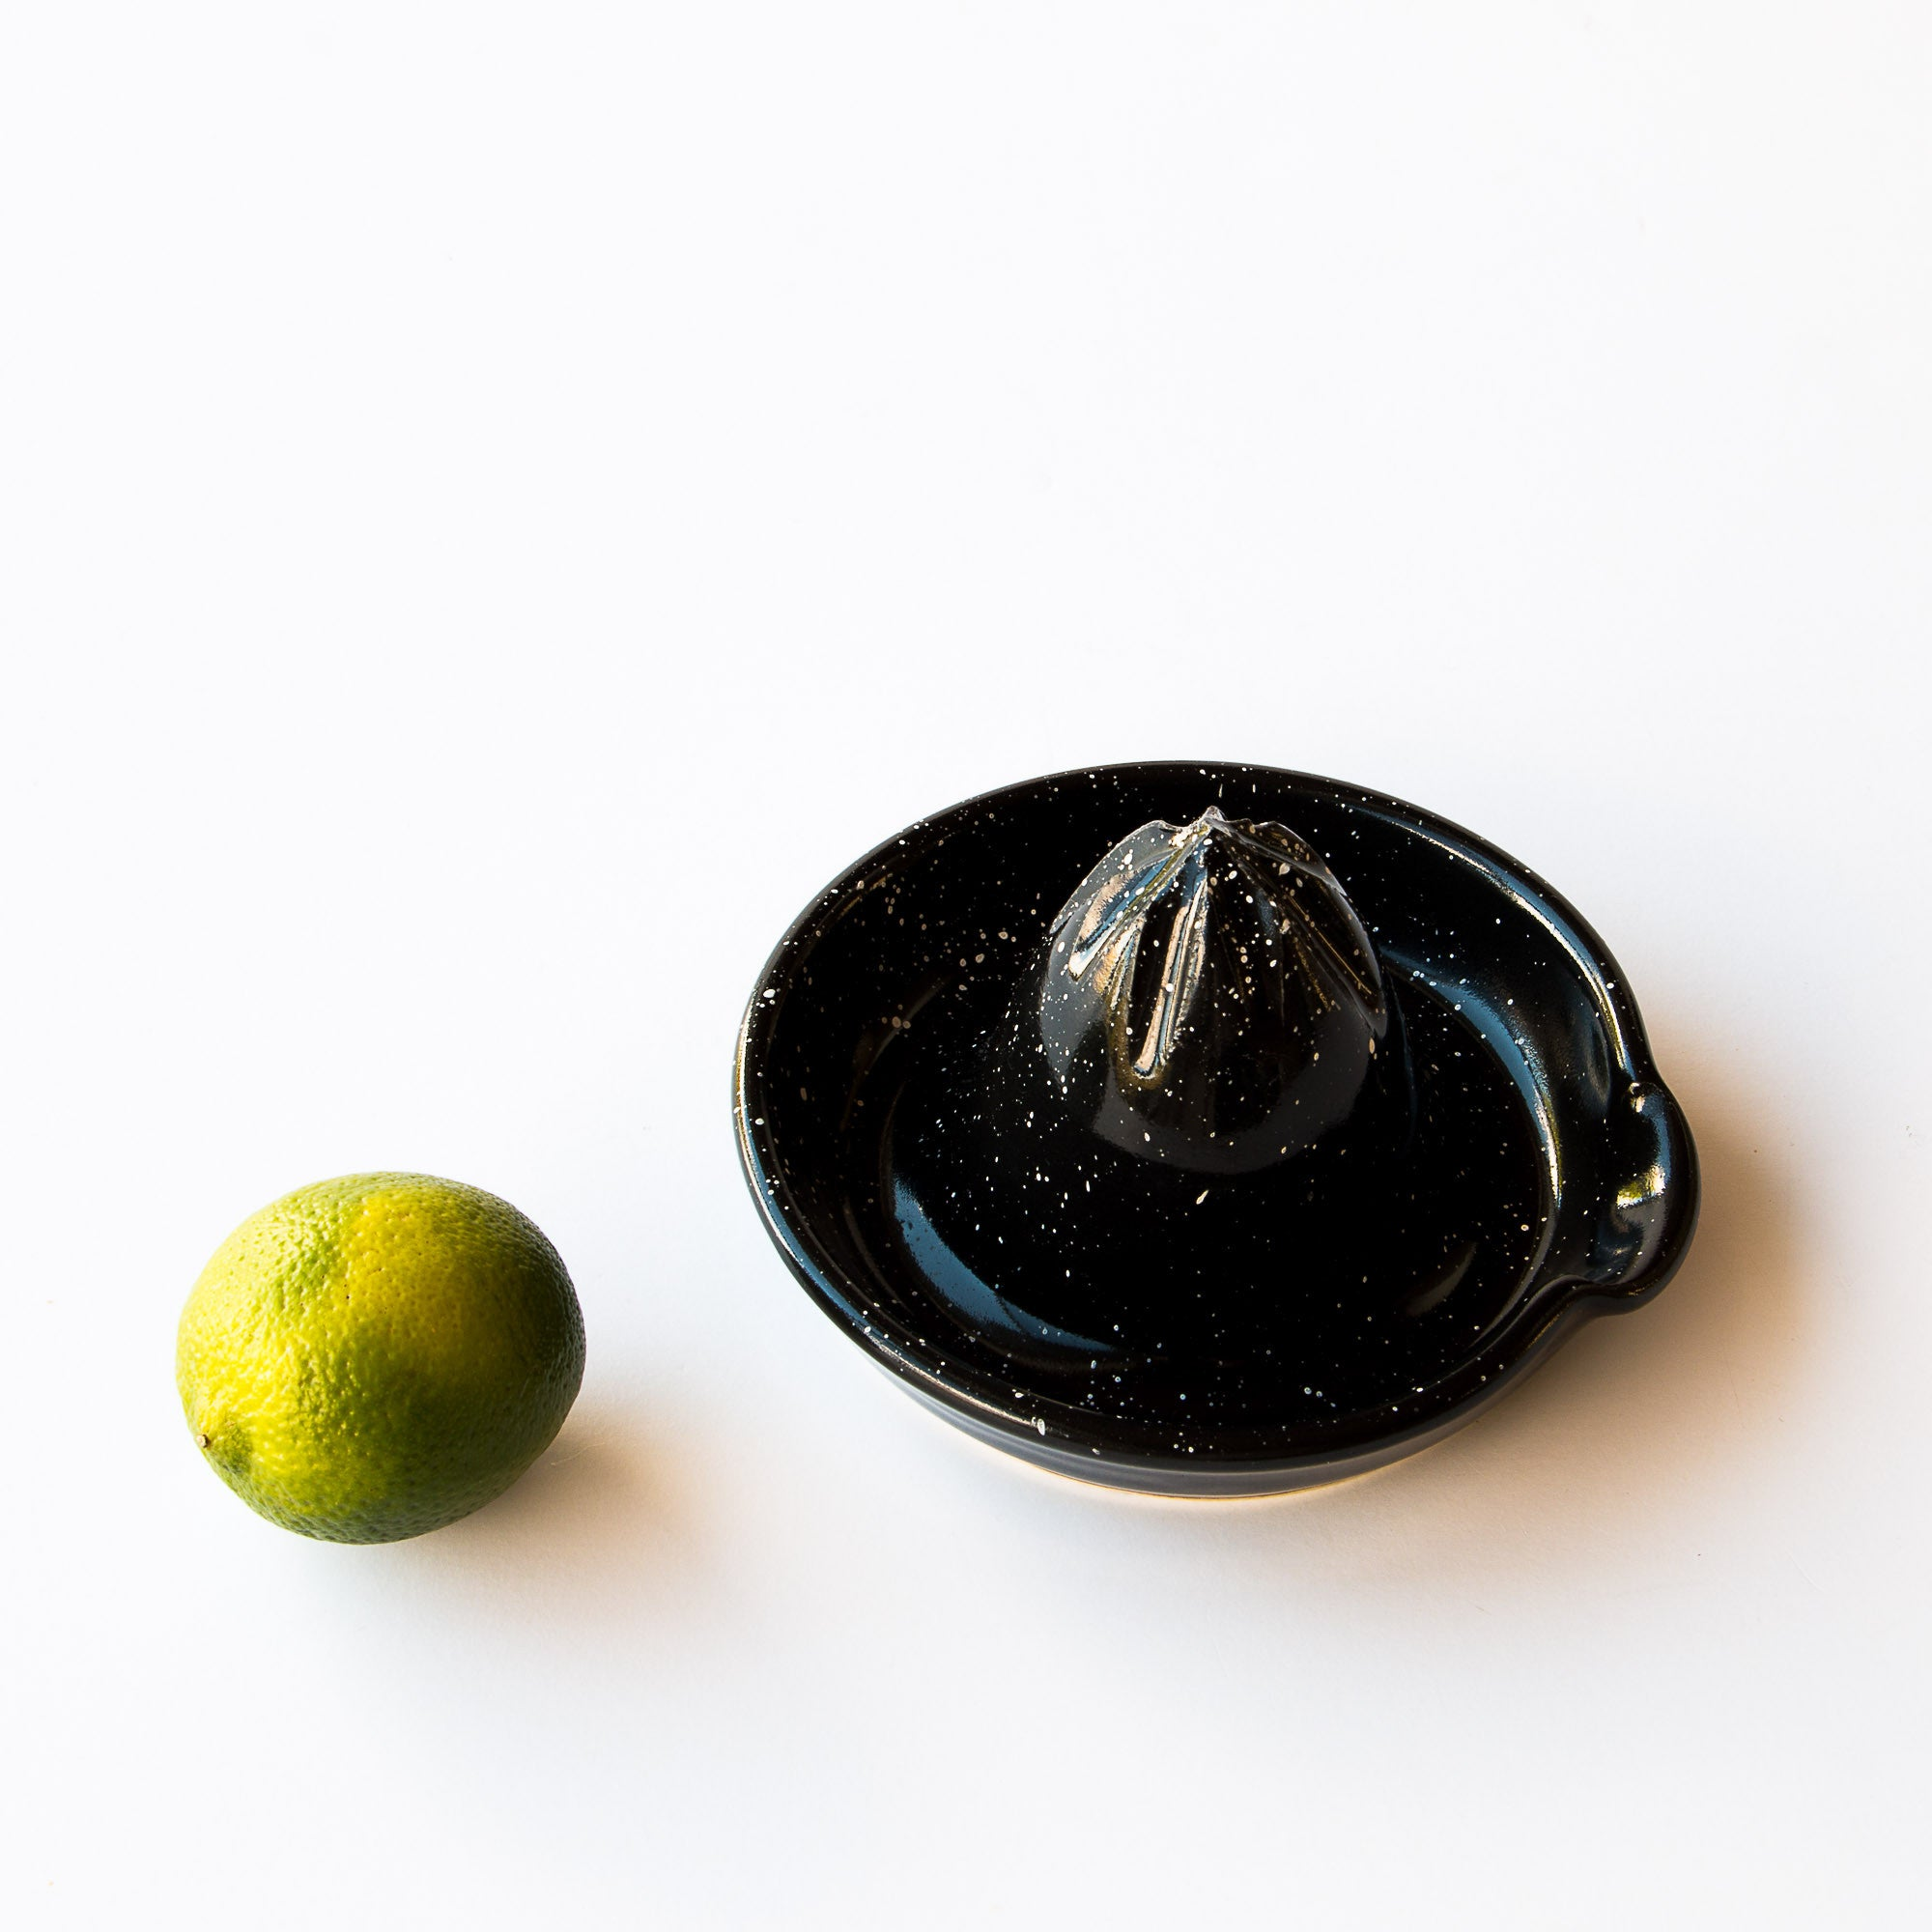 Handmade Ceramic Citrus Juicer / Sqeezer - Made in Canada - Sold By Chic & Basta